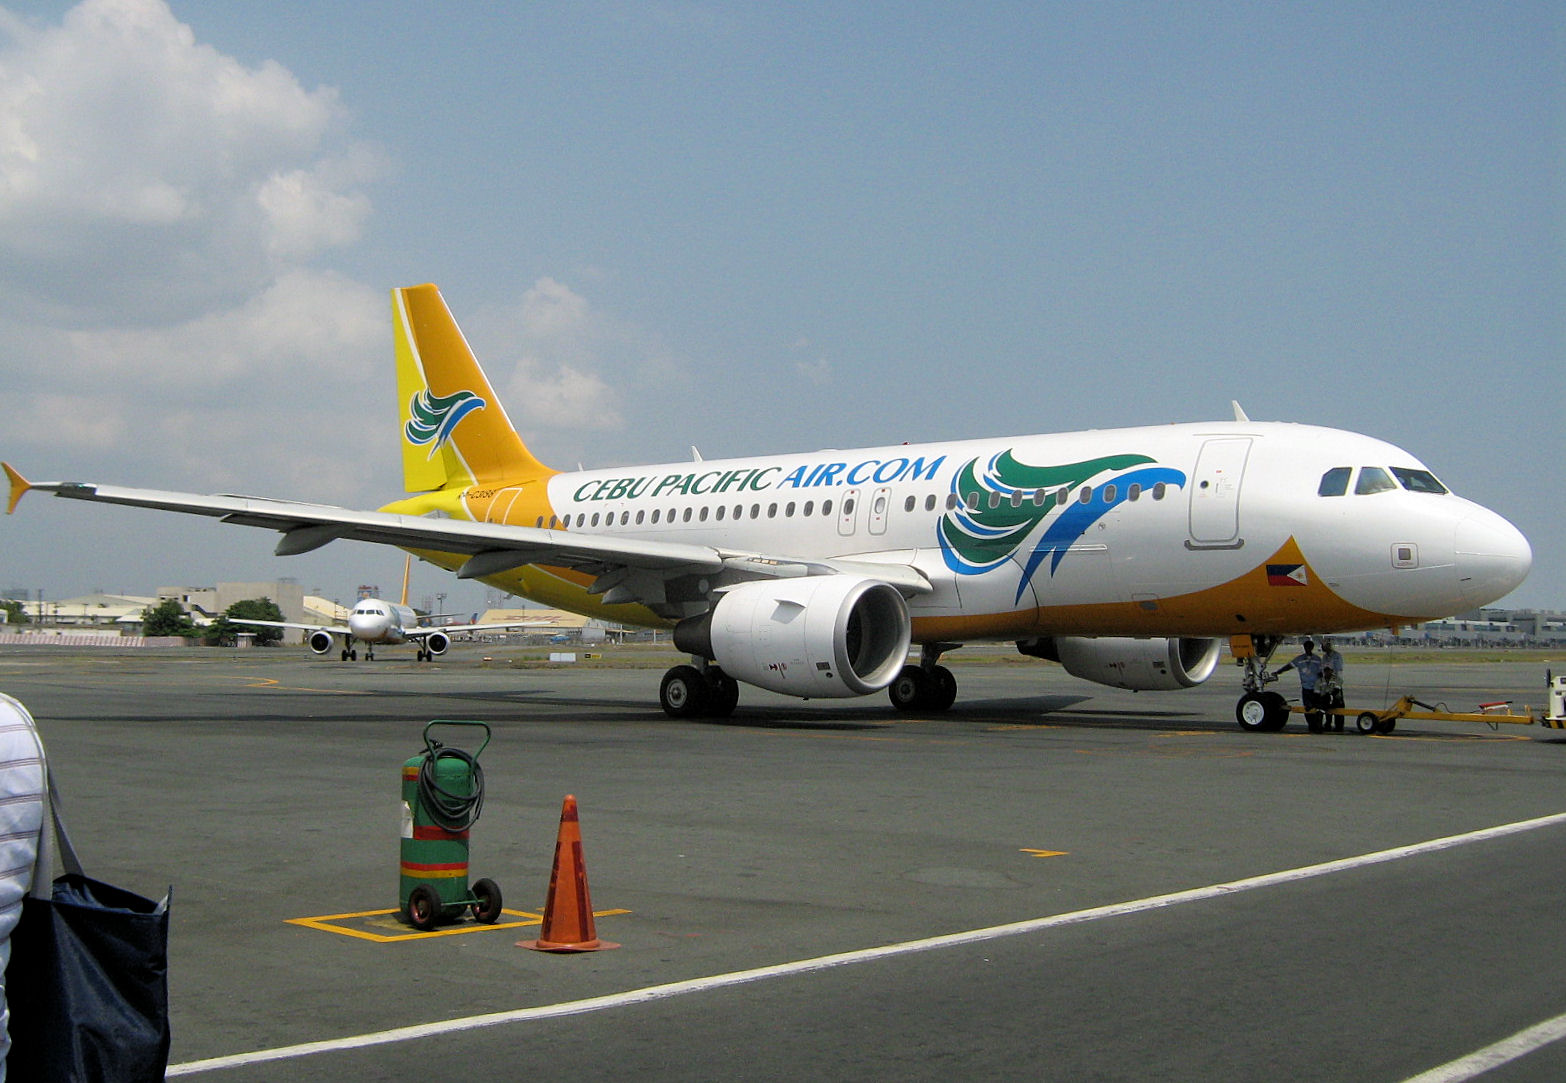 File:Cebu pacific plane.jpg - Wikipedia, the free encyclopedia